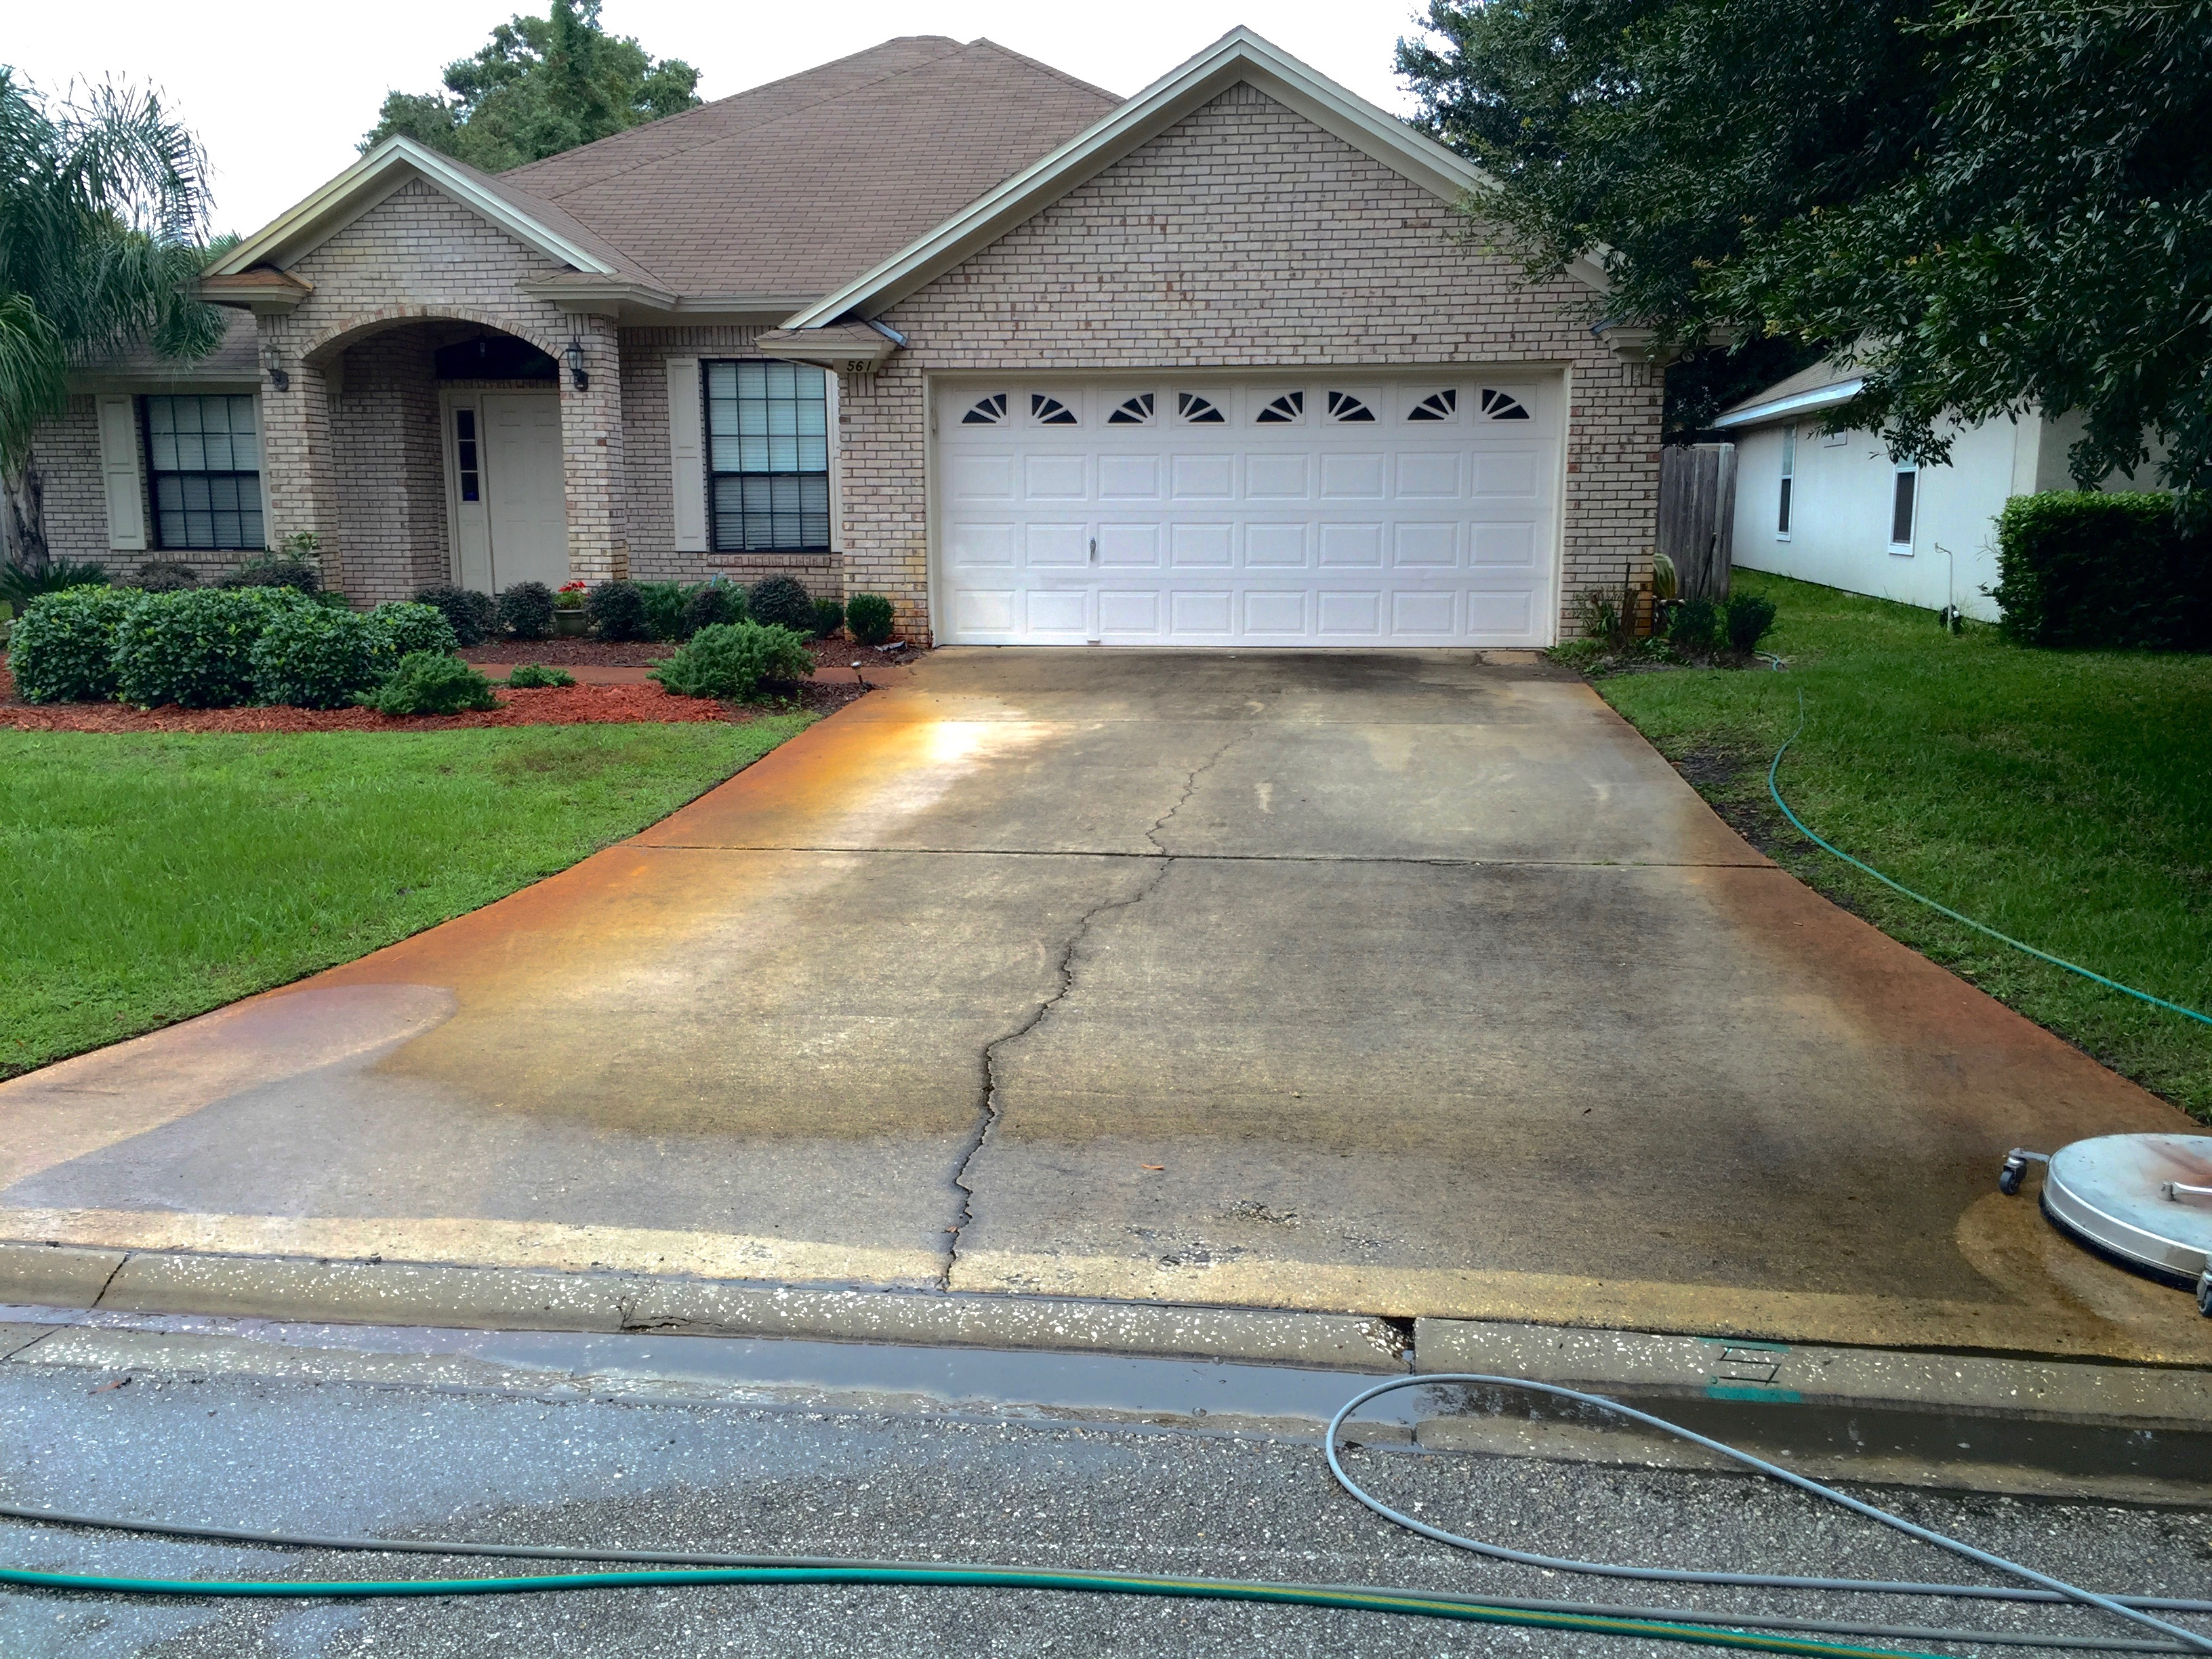 Removing rust stains from concrete can be challenging for Driveway stain remover